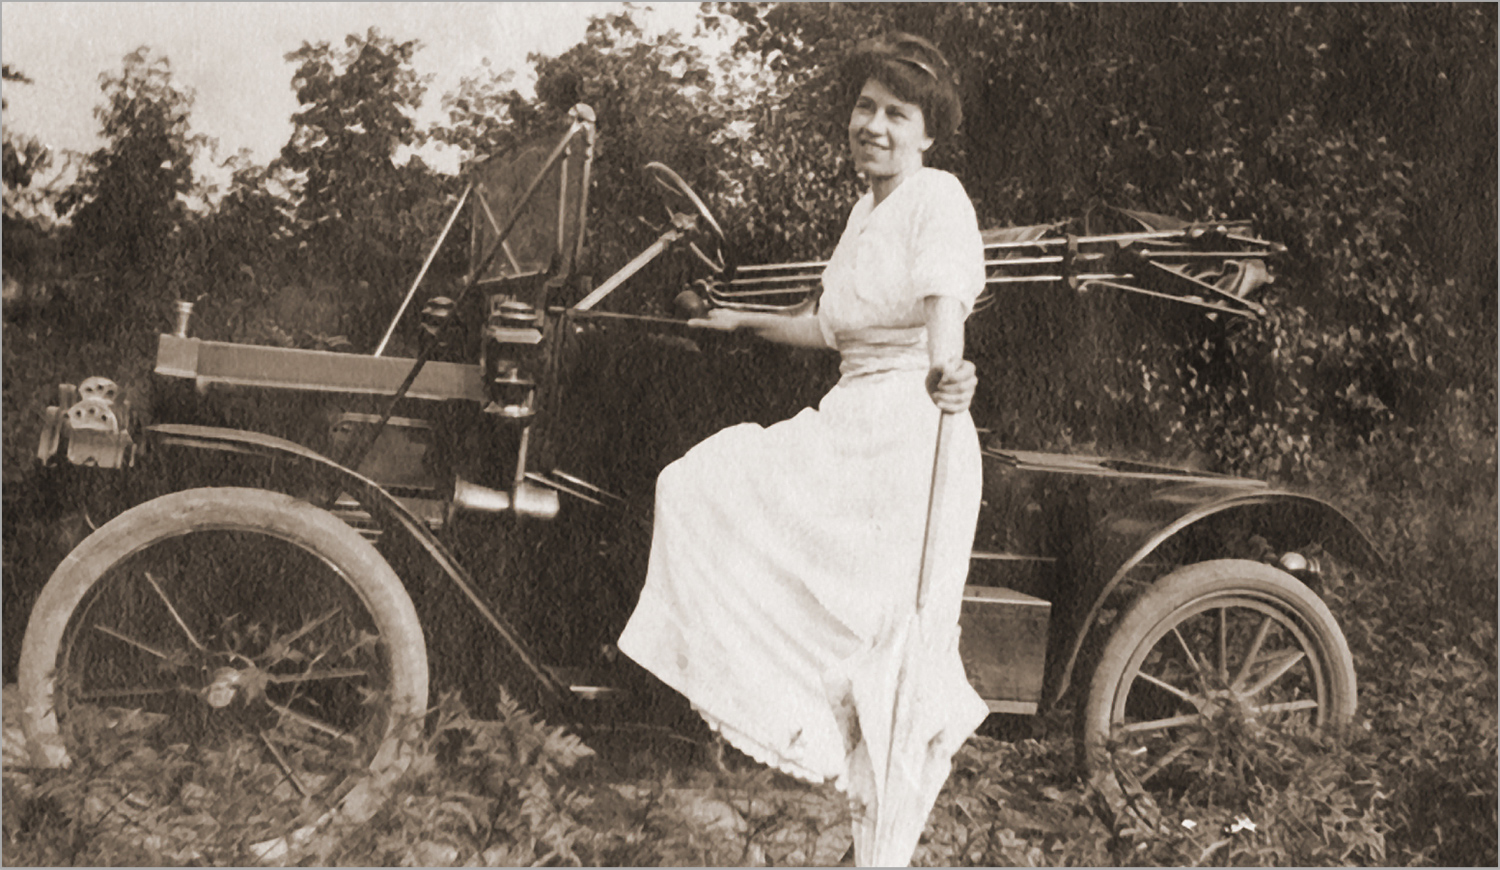 posing by the Model-T